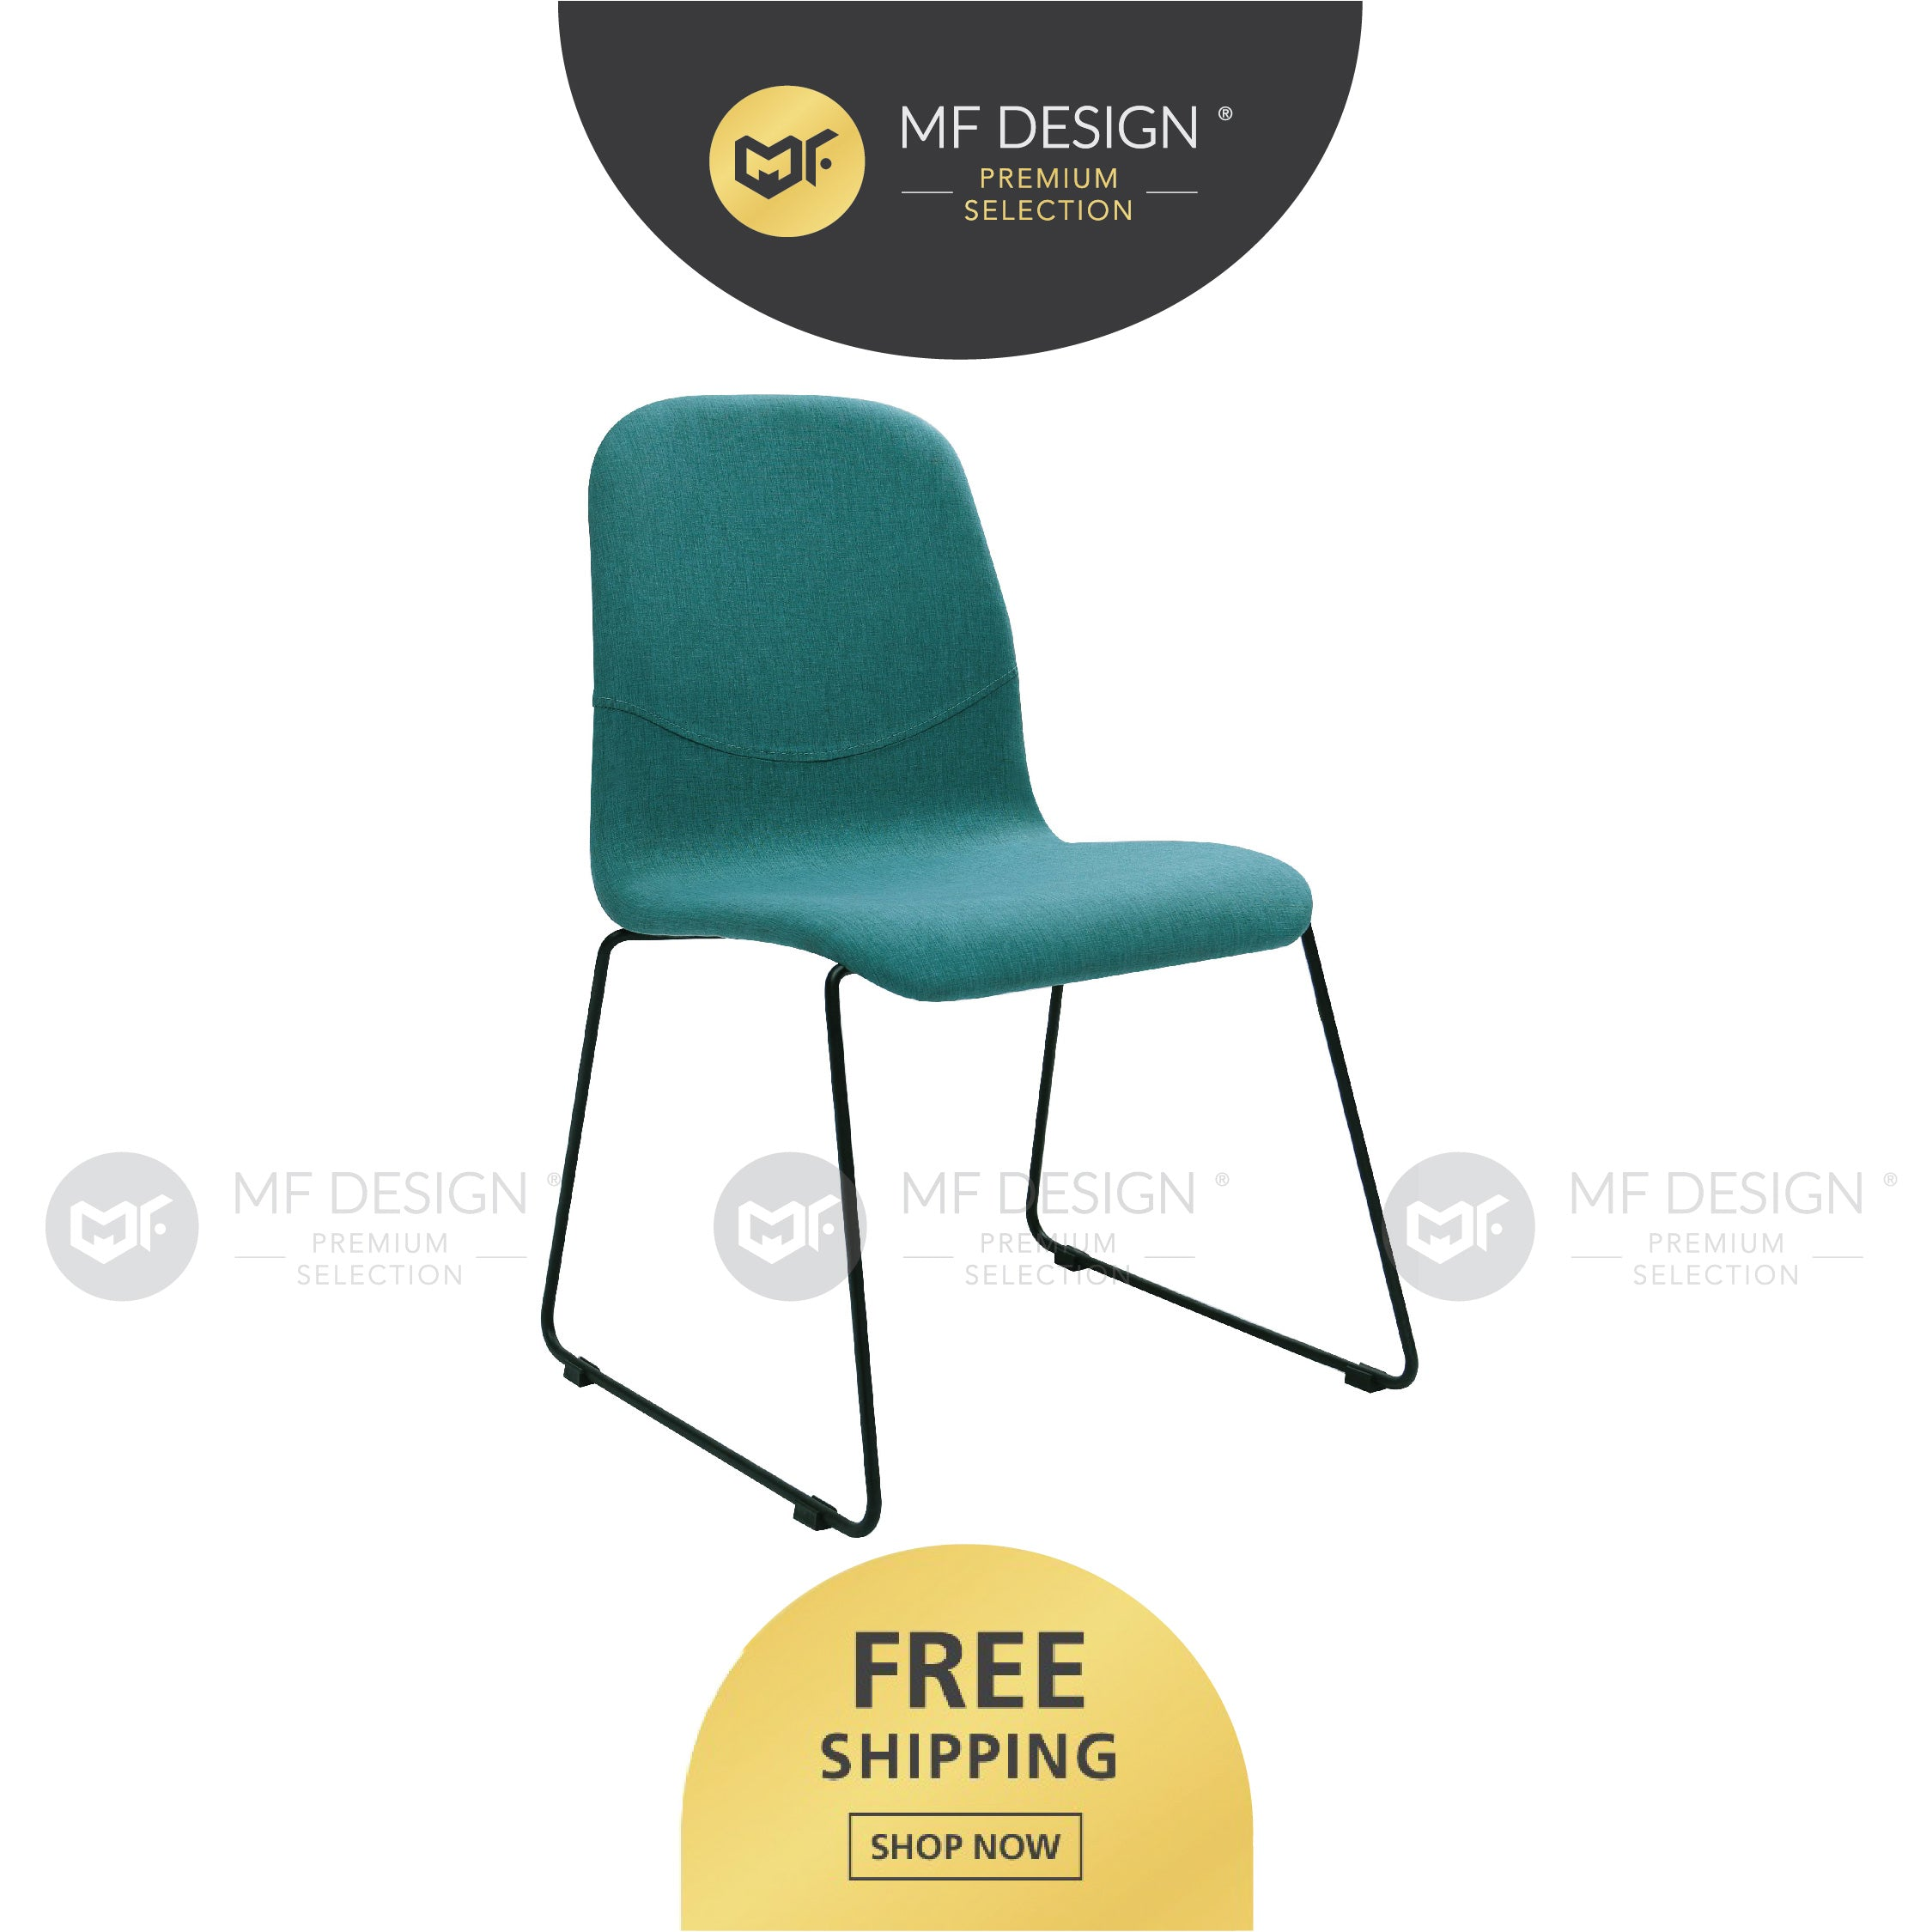 MFD Premium Aaron Dining Chair / kerusi / chair